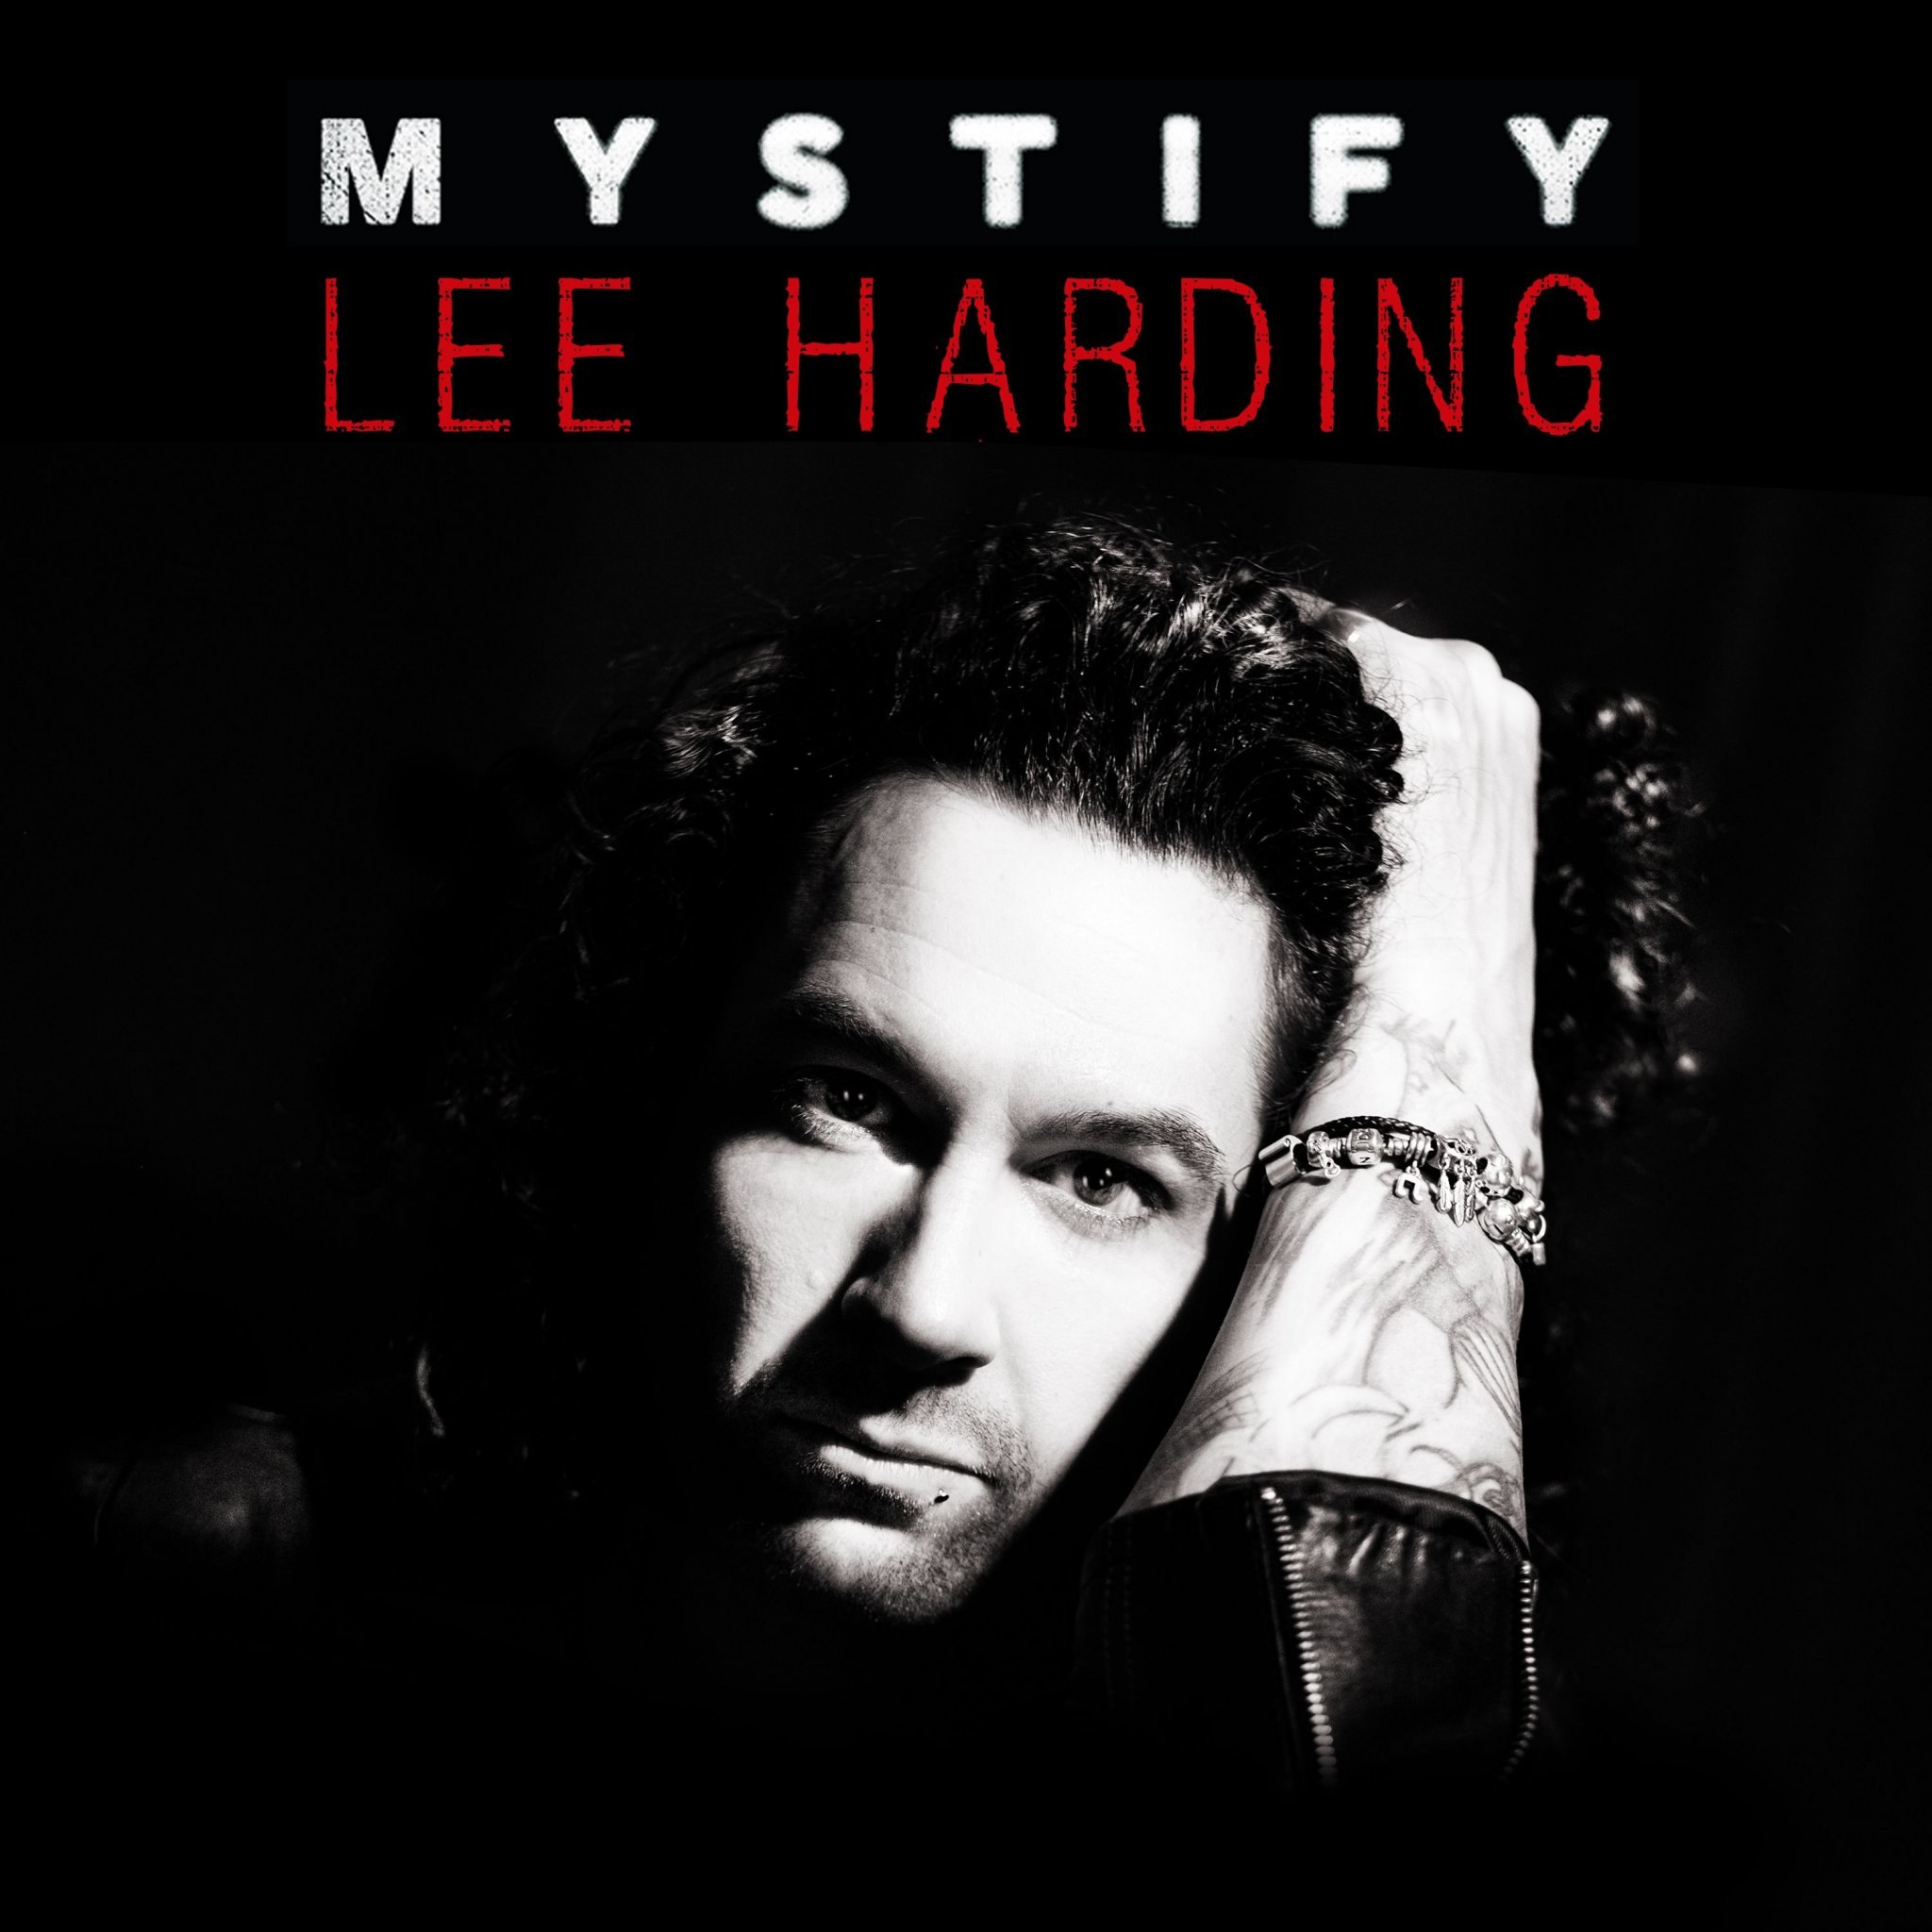 MYSTIFY - The Songbook Of INXS Featuring Lee Harding